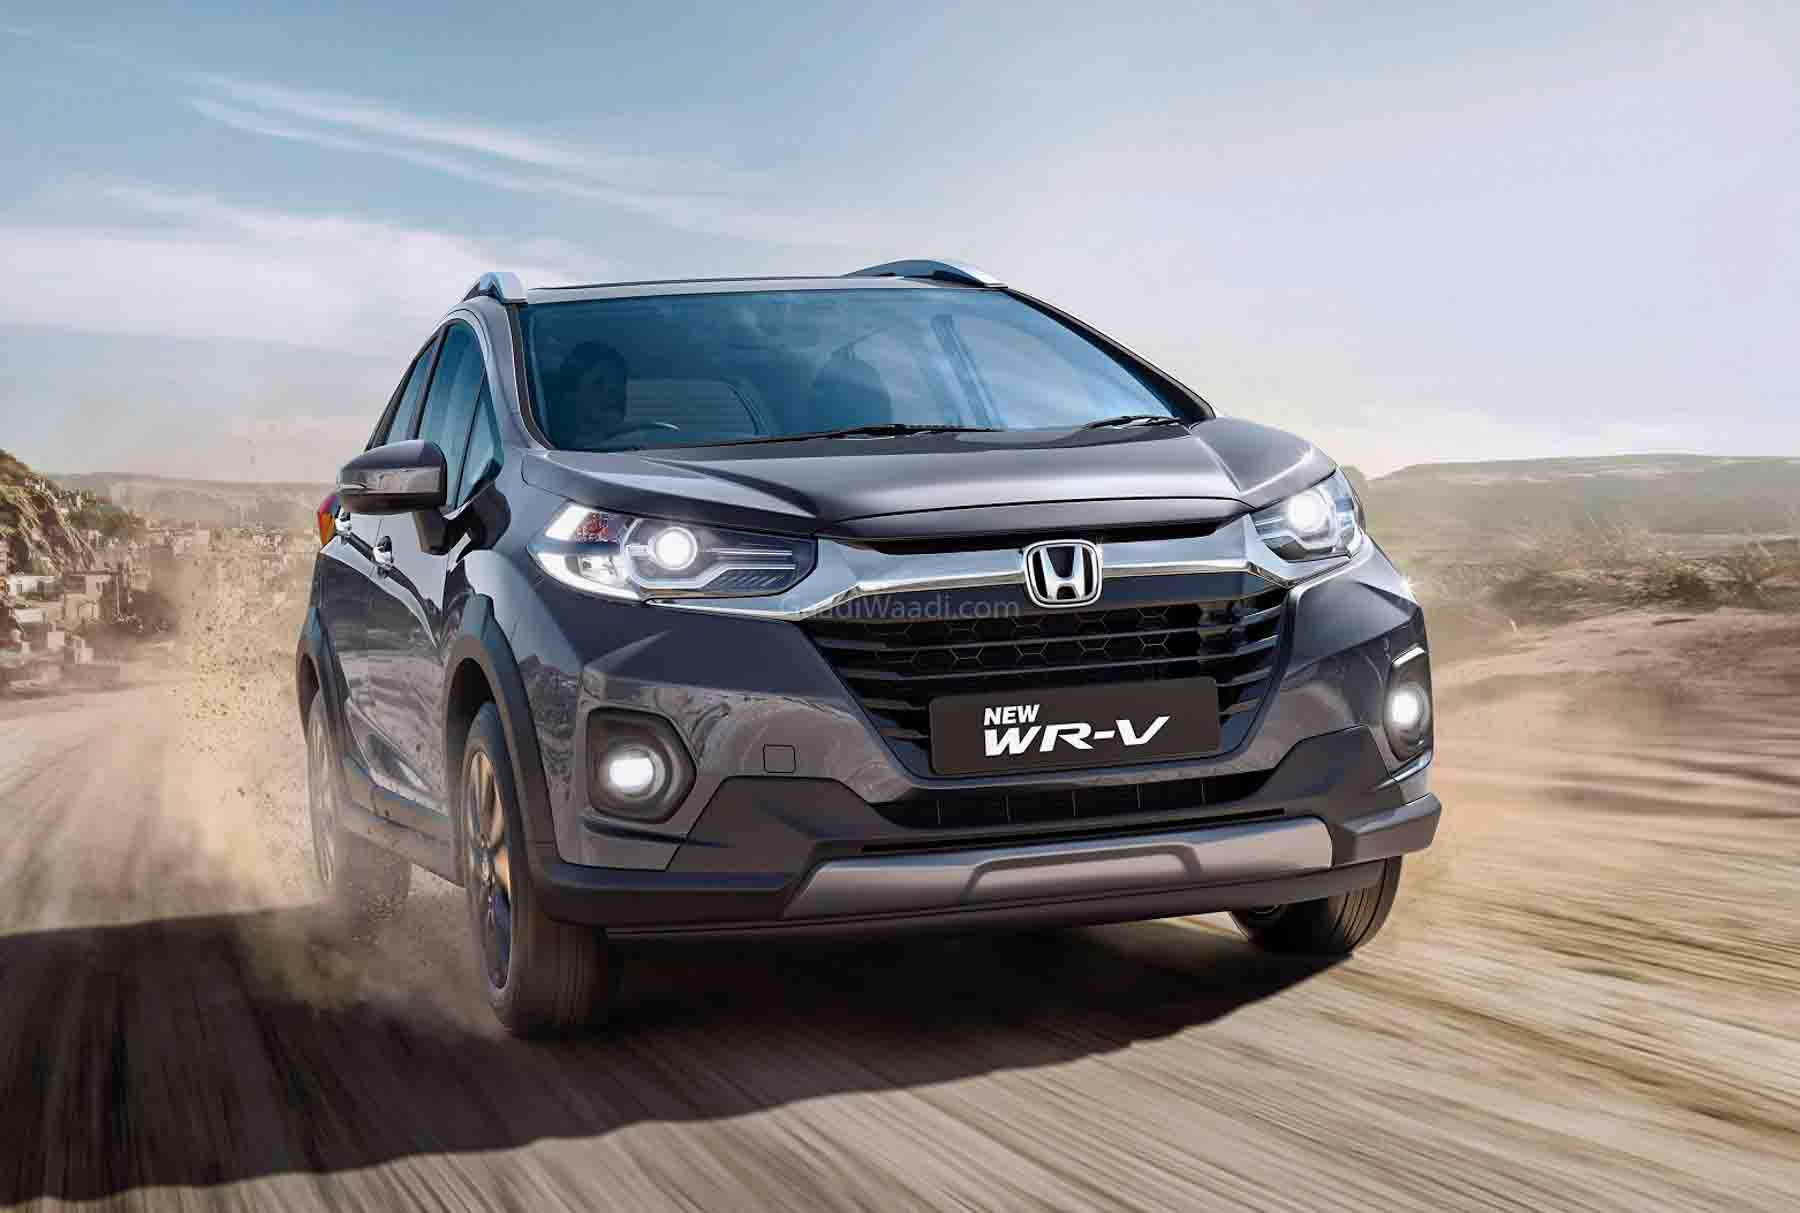 2020 Honda WR-V BS6 Launched In India; Priced From Rs. 8.49 Lakh